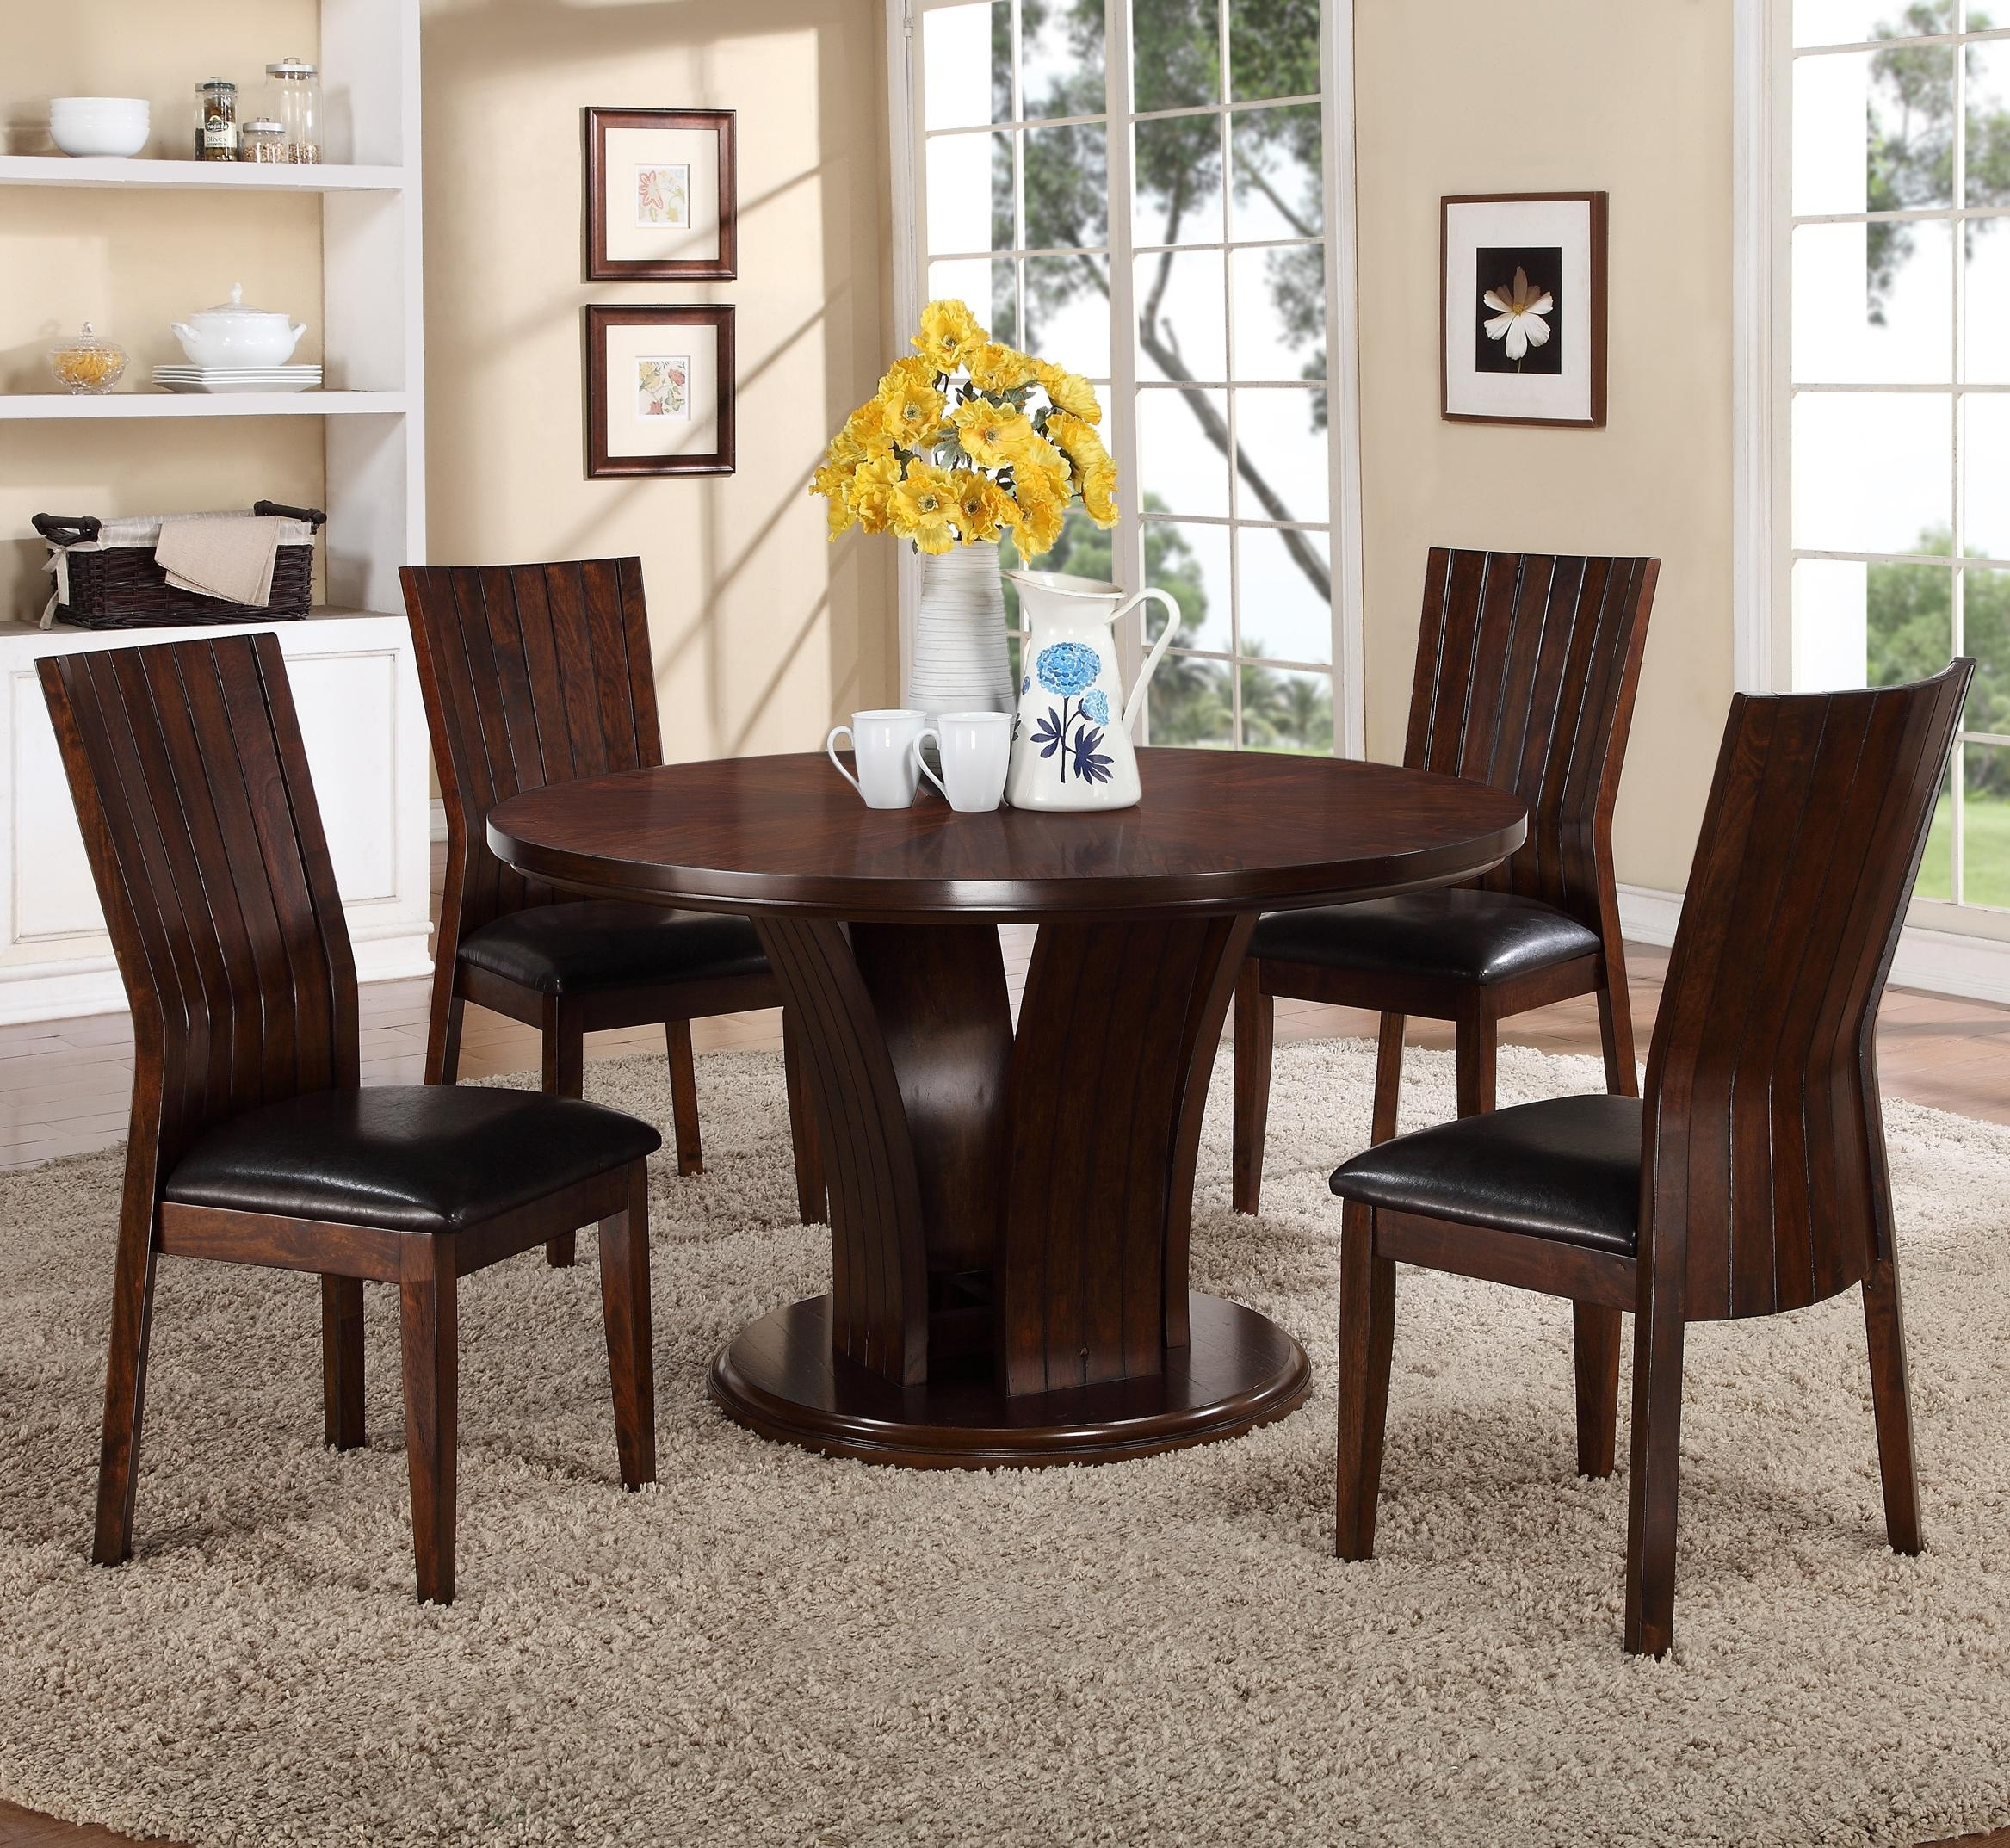 Crown Mark Daria 5 Piece Dining Set With Round Pedestal Table And Intended For Current Jaxon 5 Piece Round Dining Sets With Upholstered Chairs (Photo 7 of 20)